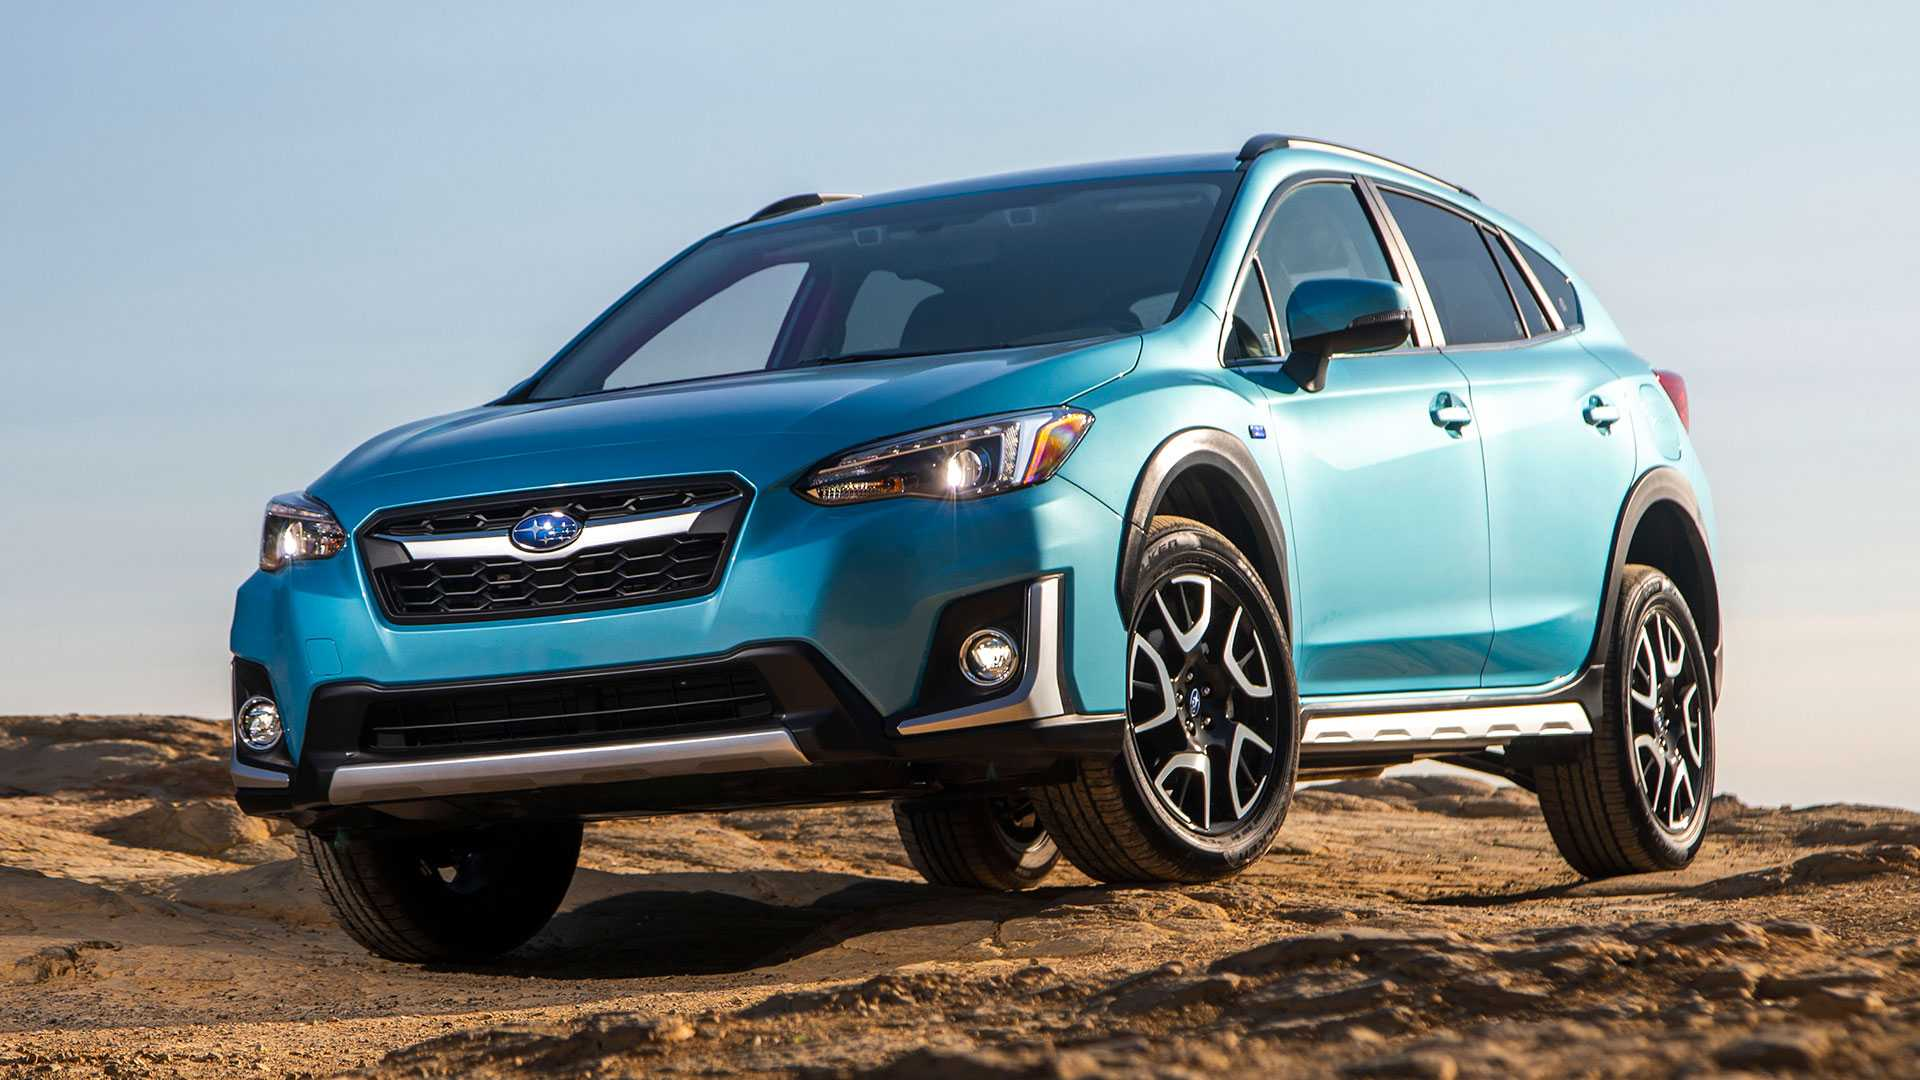 68 The Subaru Plans For 2019 Concept Redesign And Review Spy Shoot